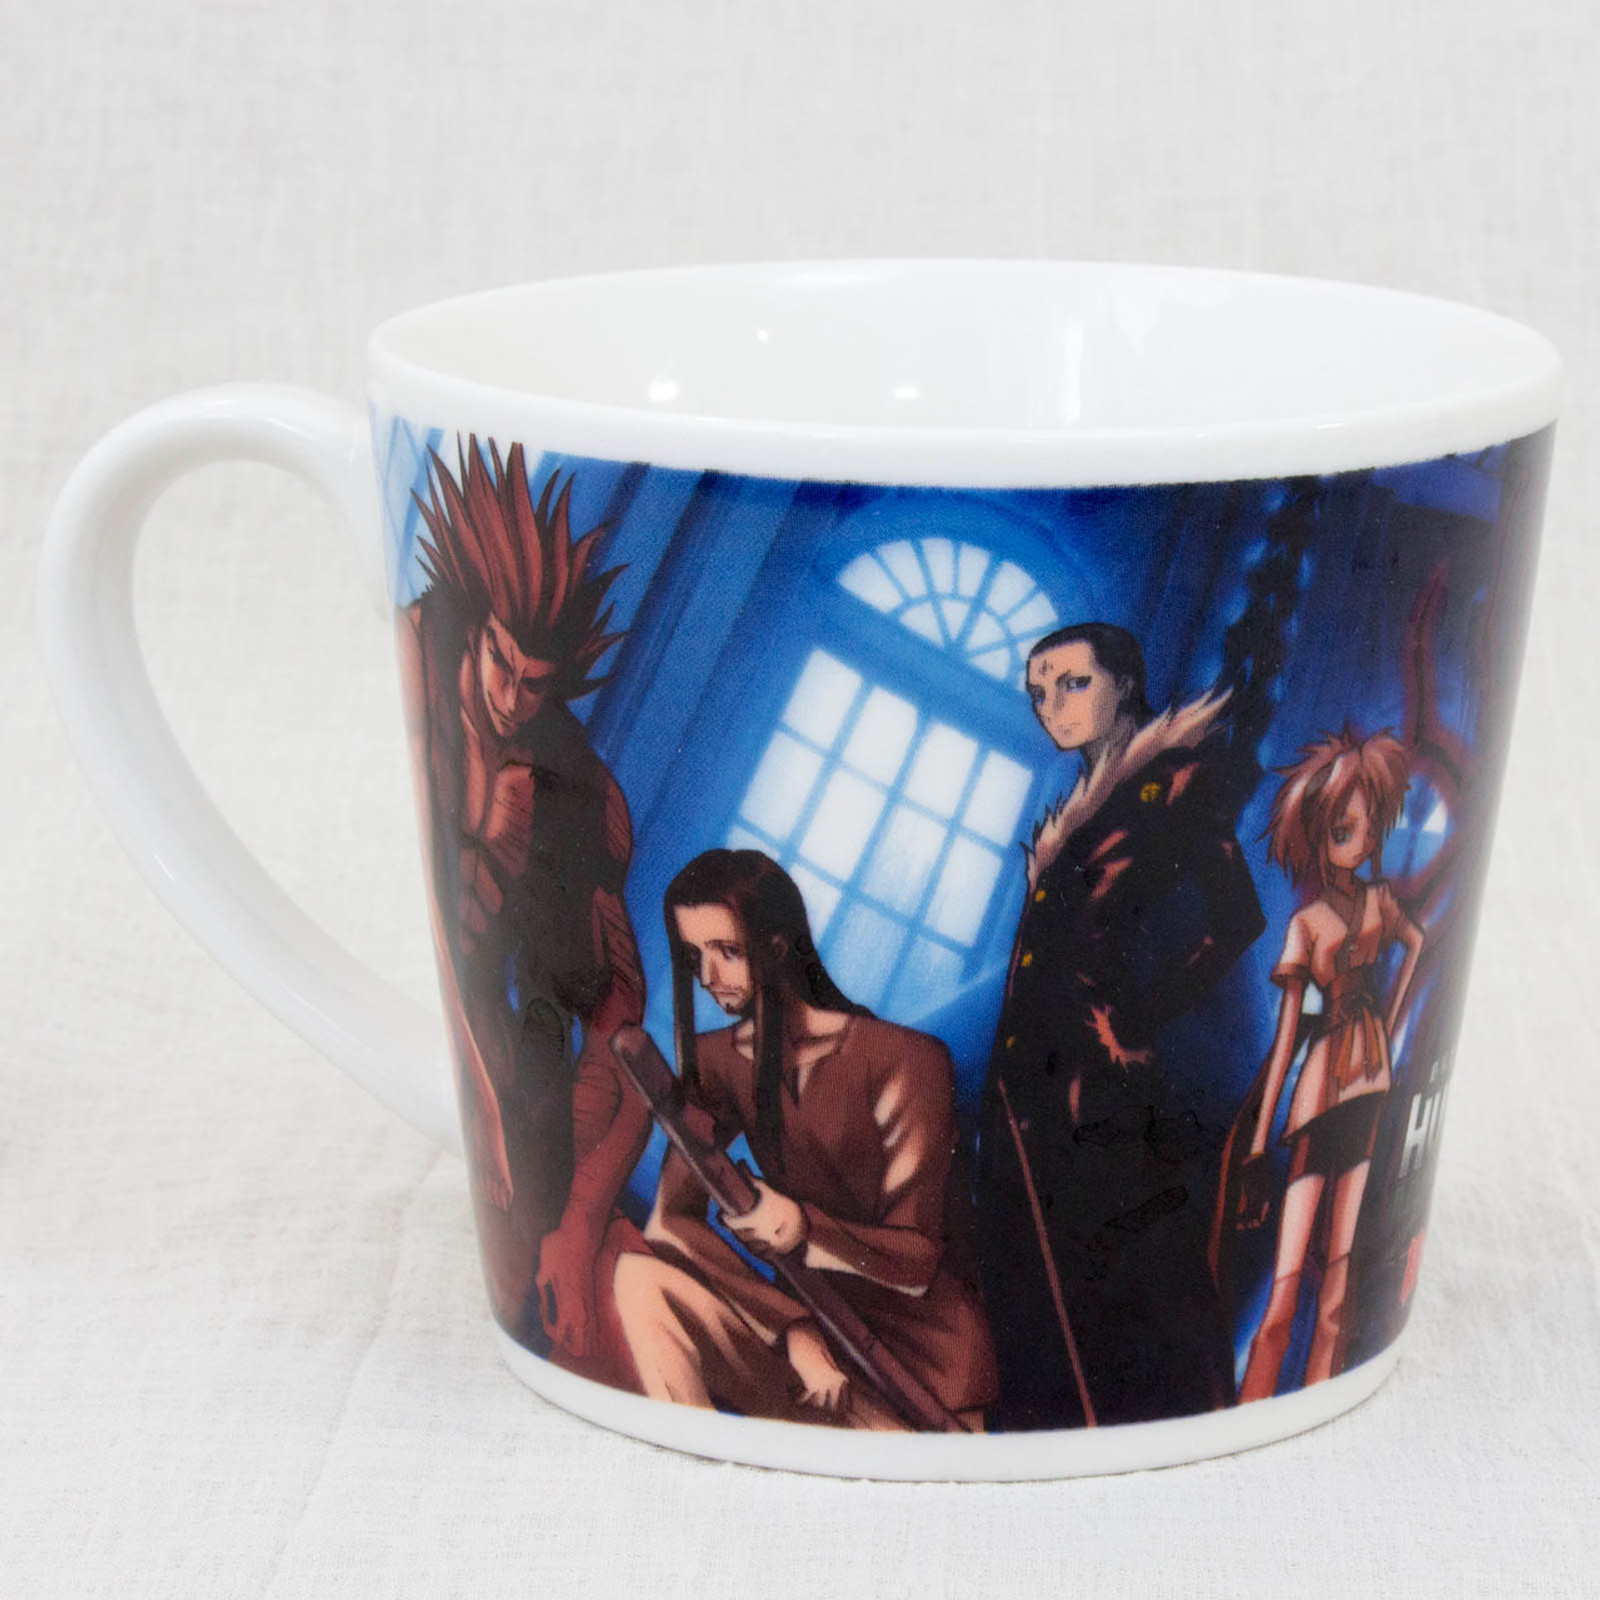 HUNTER x HUNTER Movie Hiiro no Genei Mug Hisoka Kuroro JAPAN ANIME MANGA